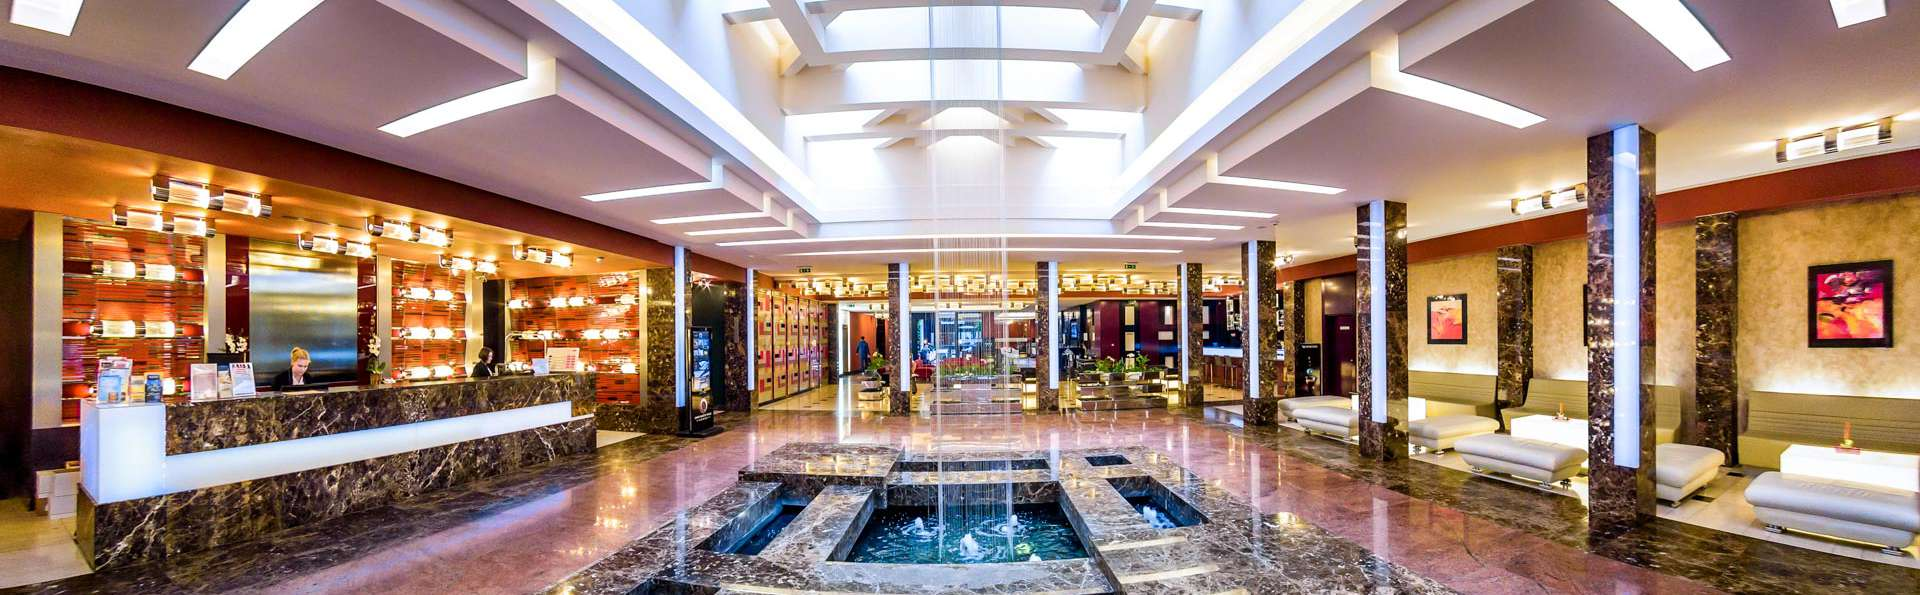 Grand Majestic Plaza - EDIT_LOBBY_01.jpg